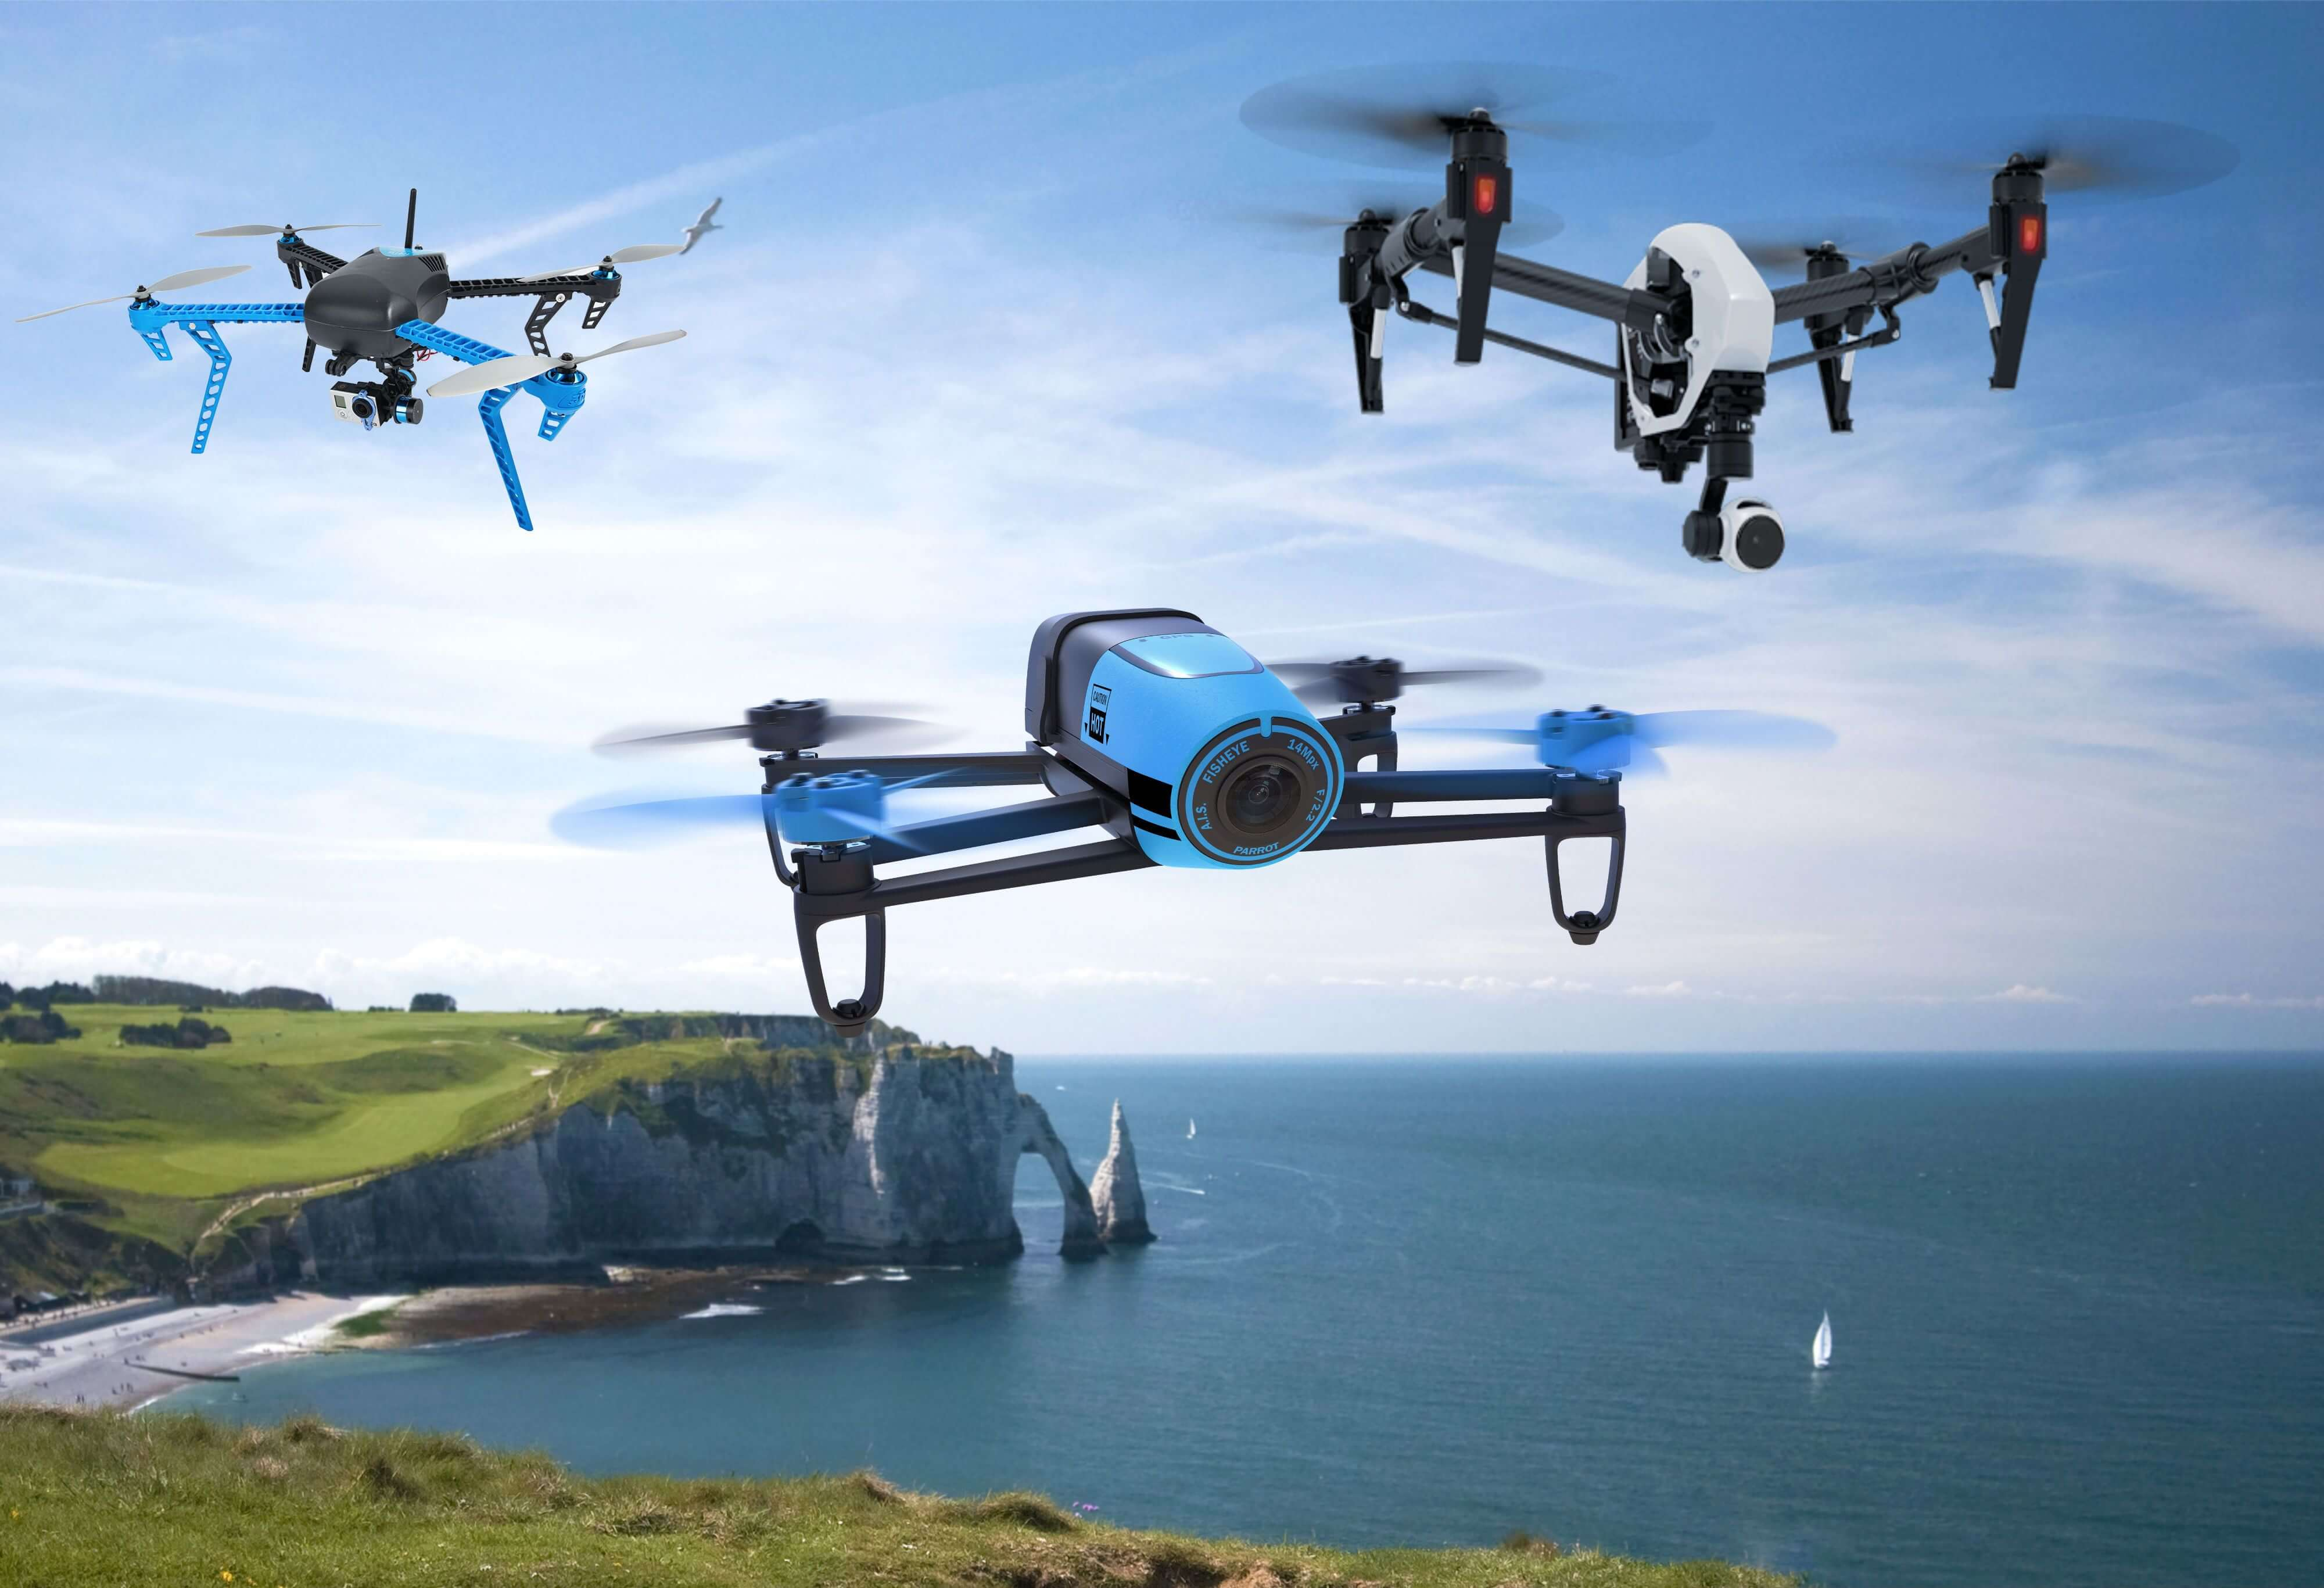 DJI and Microsoft bring support for native Windows apps to drones with new SDK